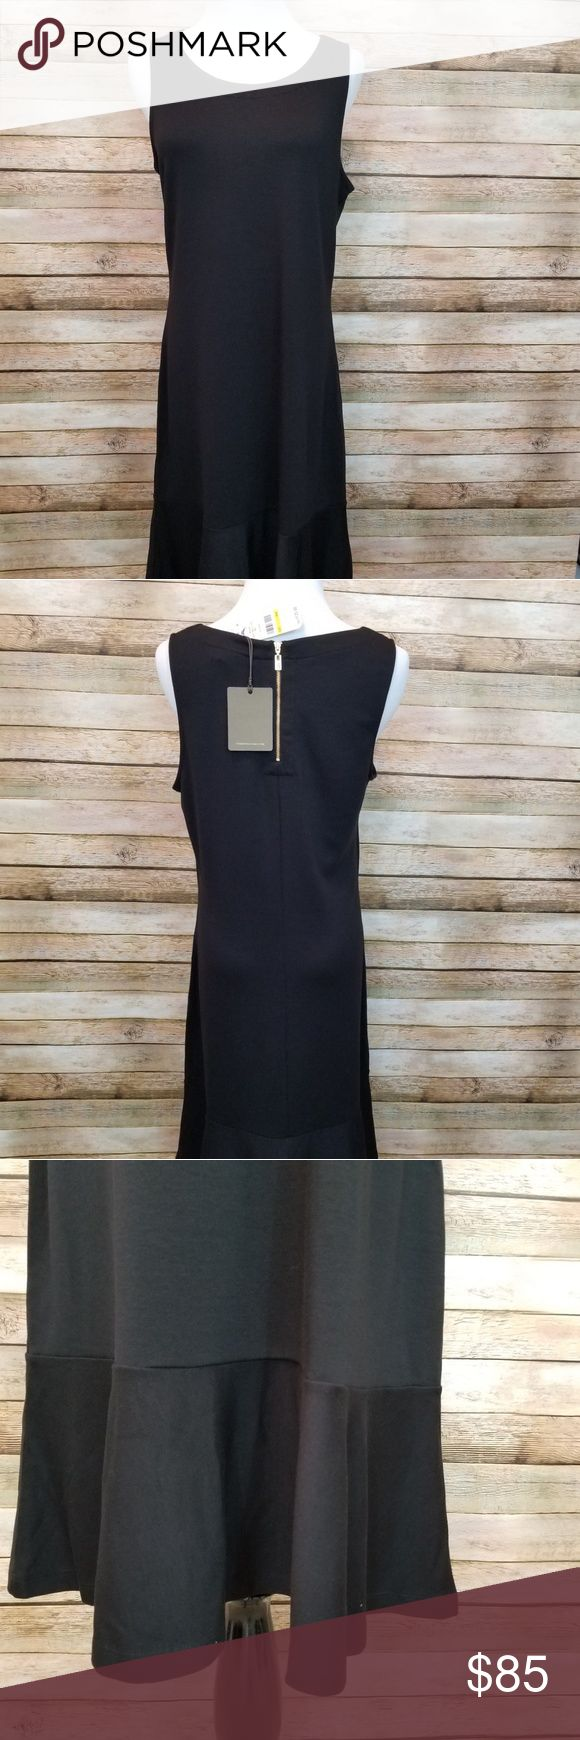 Tommy Bahama black shift dress NWT Tommy Bahama sleeveless black dress.  Exposed... 3